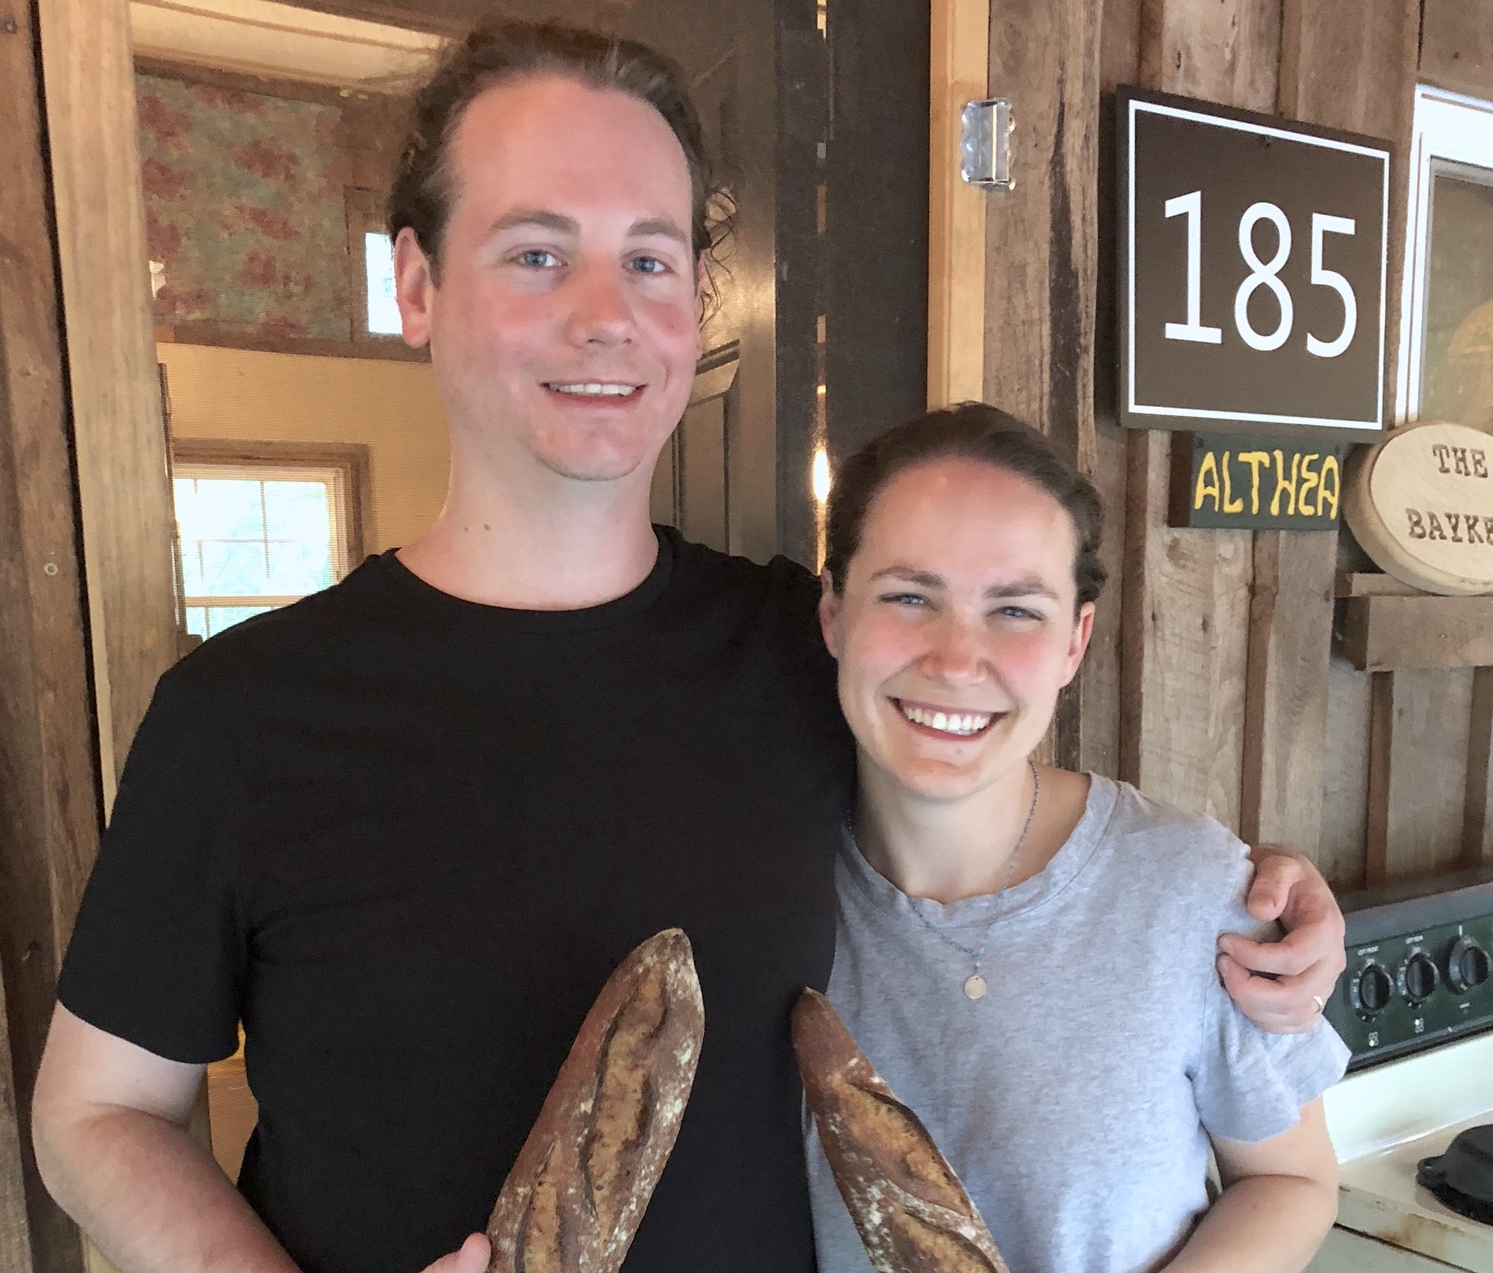 Andrew and Susan Bayker from Althea Bread